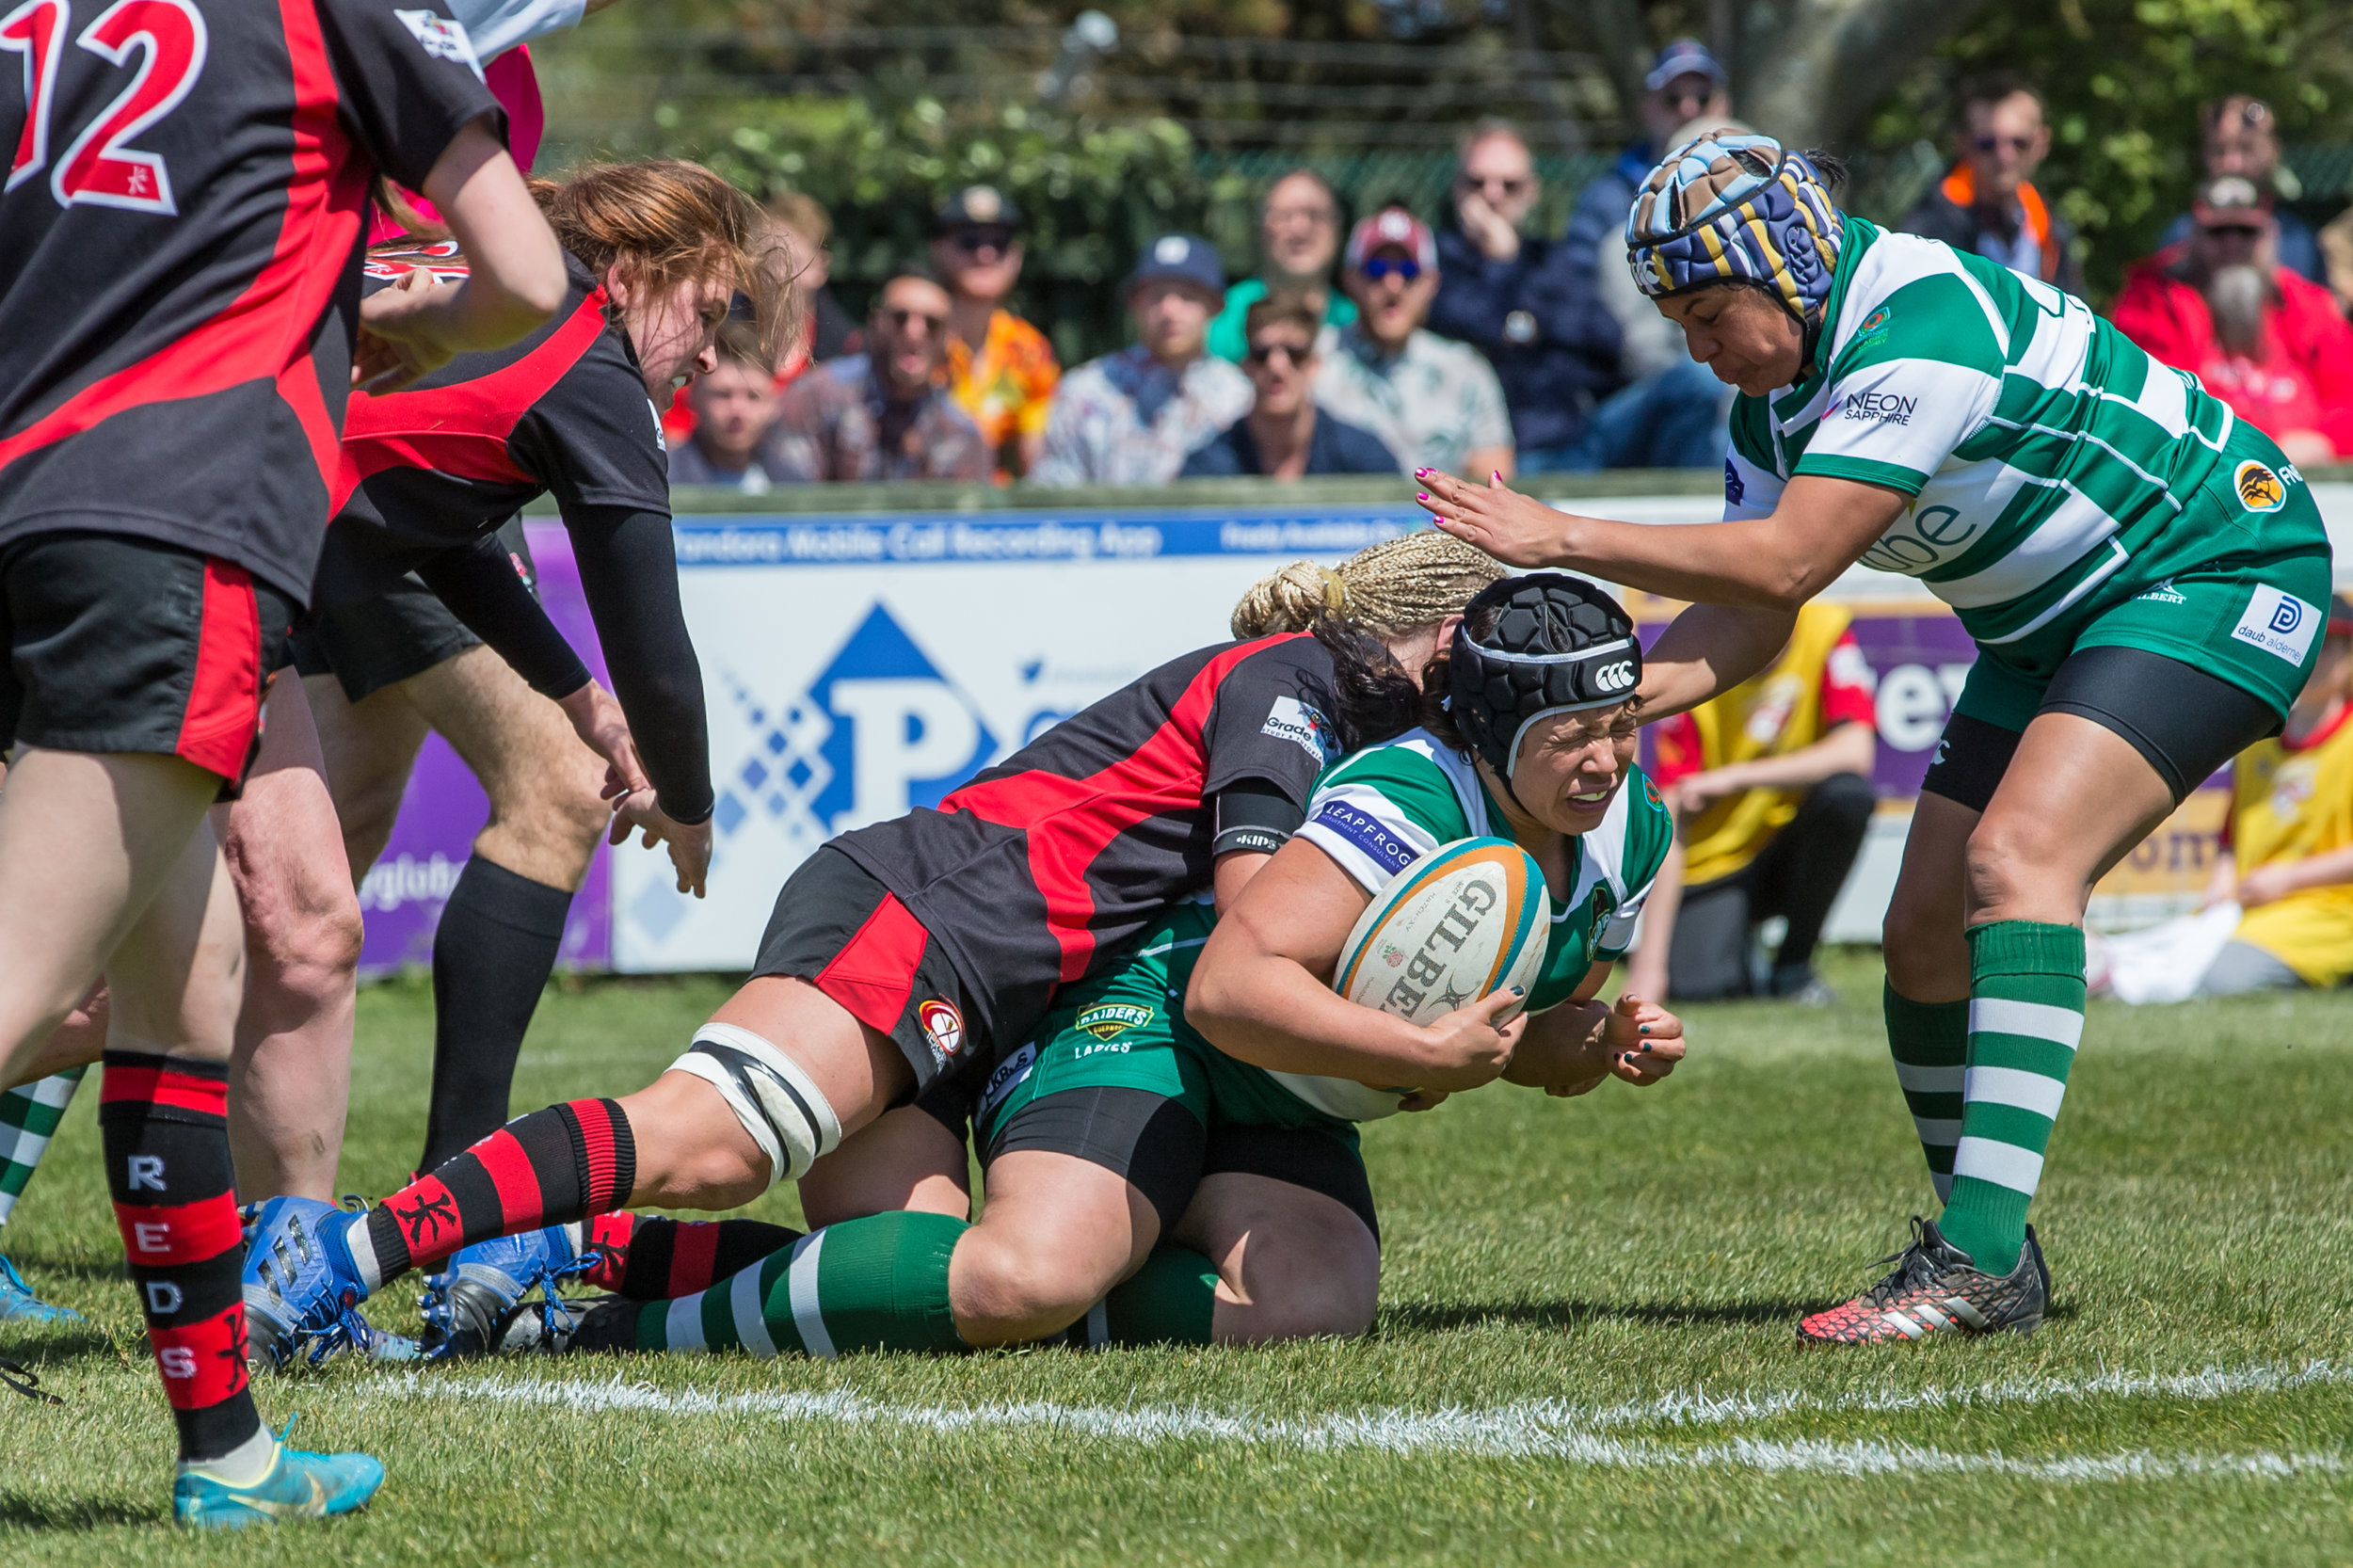 Guernsey Ladies v Jersey Siam Trophy game… Enjoy! GLR Win for an eighth consecutive year…